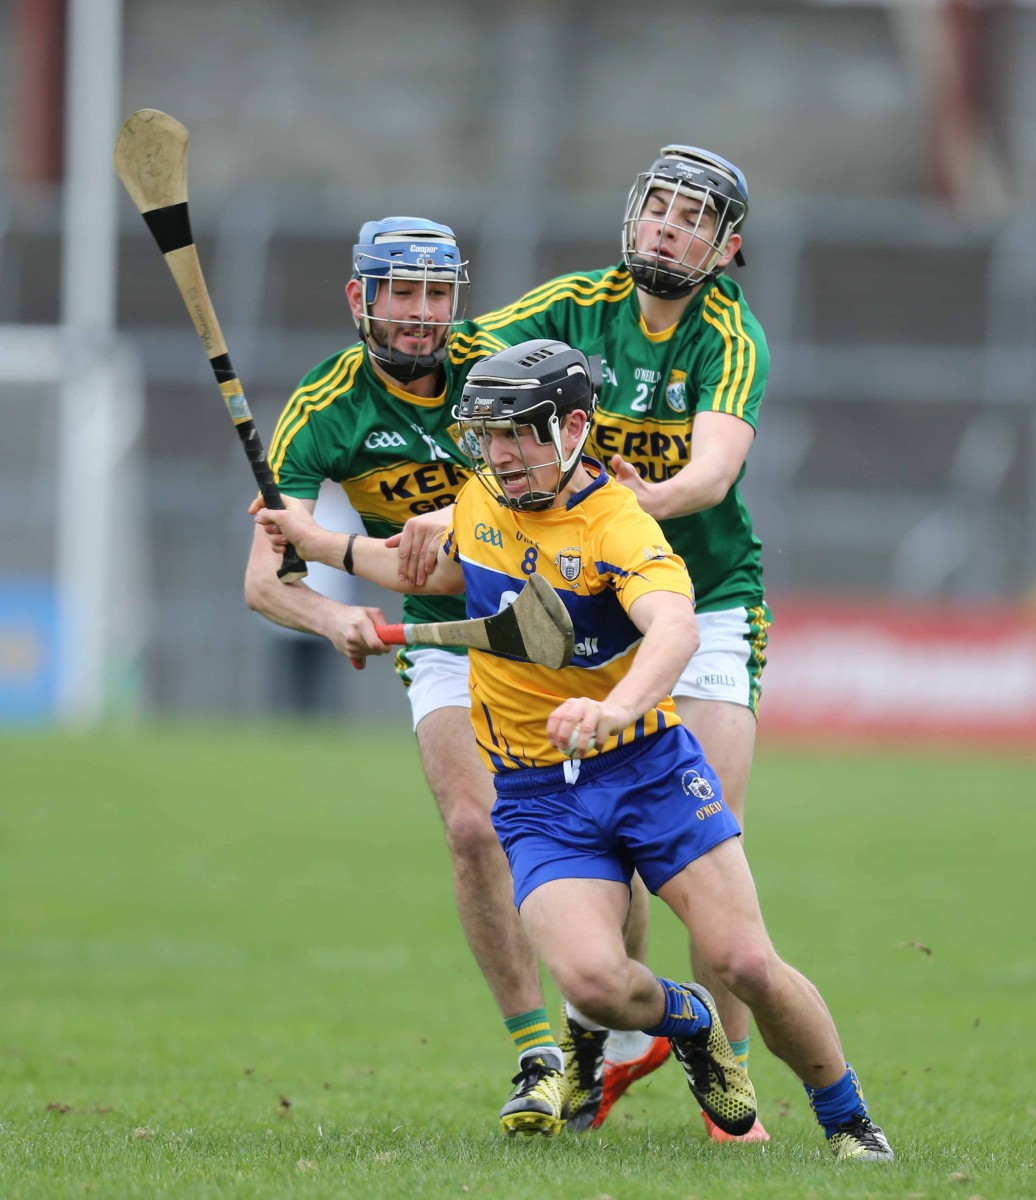 Clare's David Reidy and Kerry's Jack Goulding and Jason Diggins in action during the Allianz Hurling League match between Clare and Kerry at Cusack Park,Ennis on Sunday. Photograph by Eamon Ward